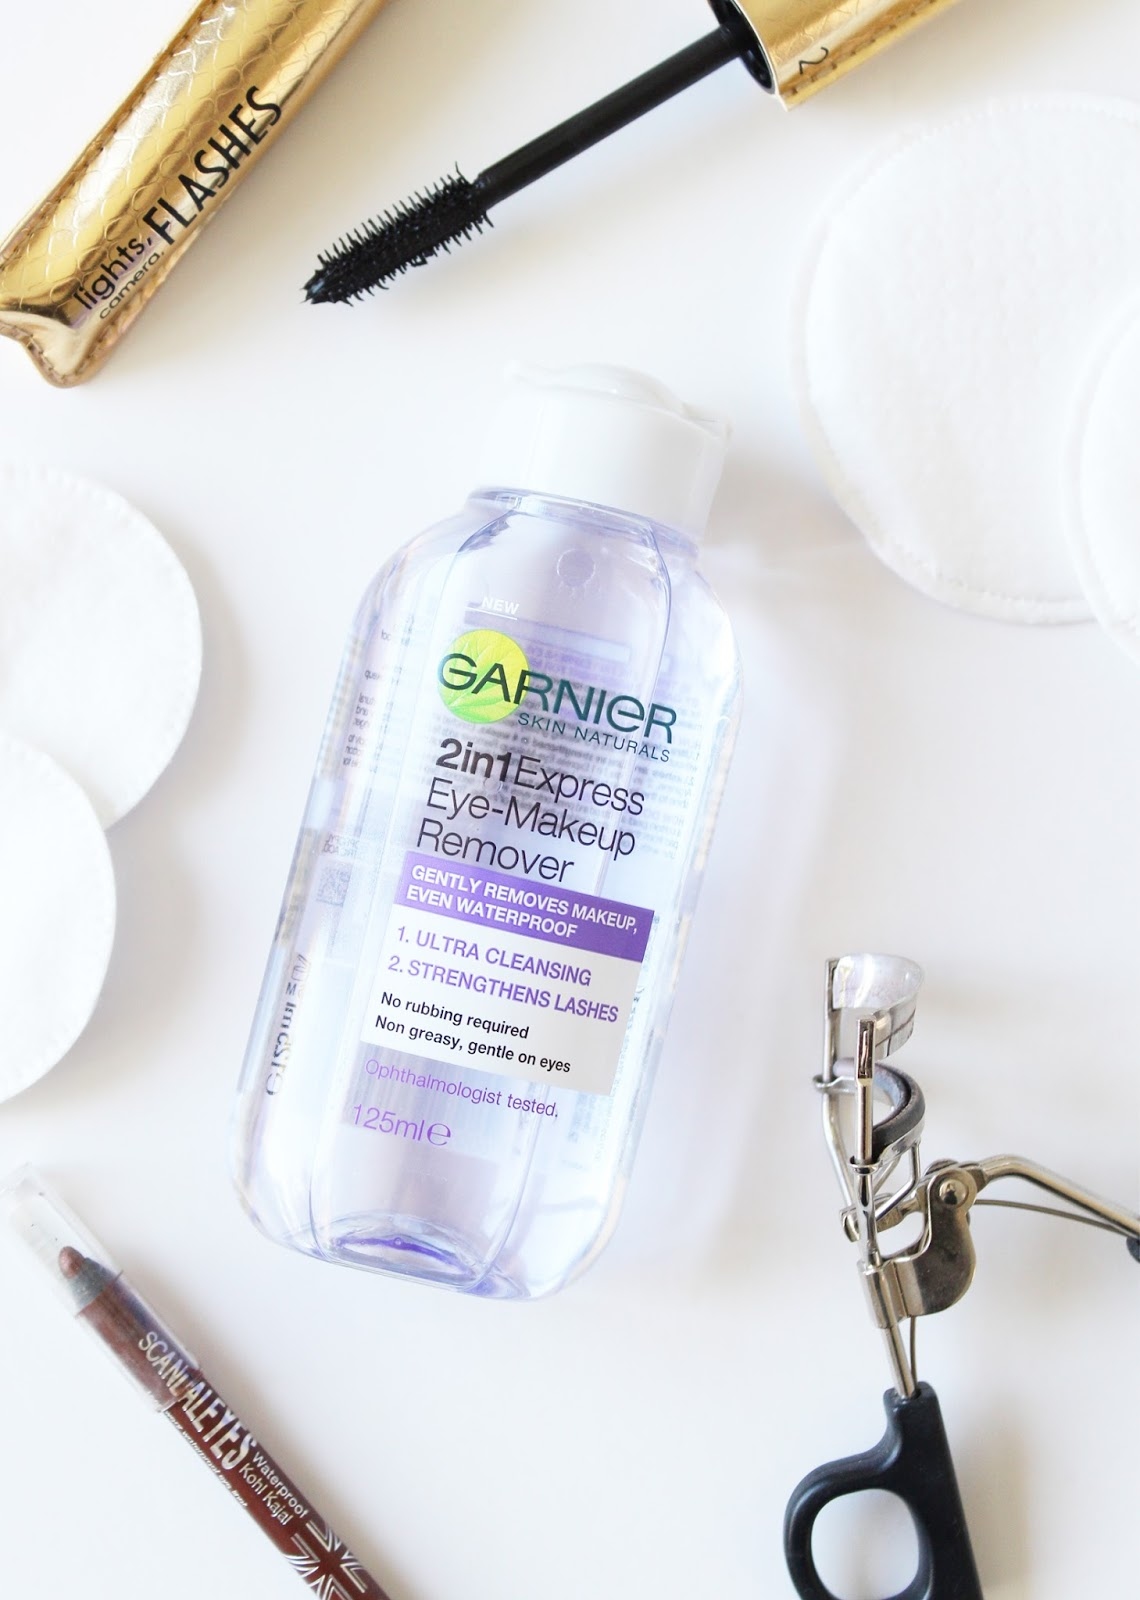 Garnier 2 In 1 Express Eye Makeup Remover Review Cassandramyee